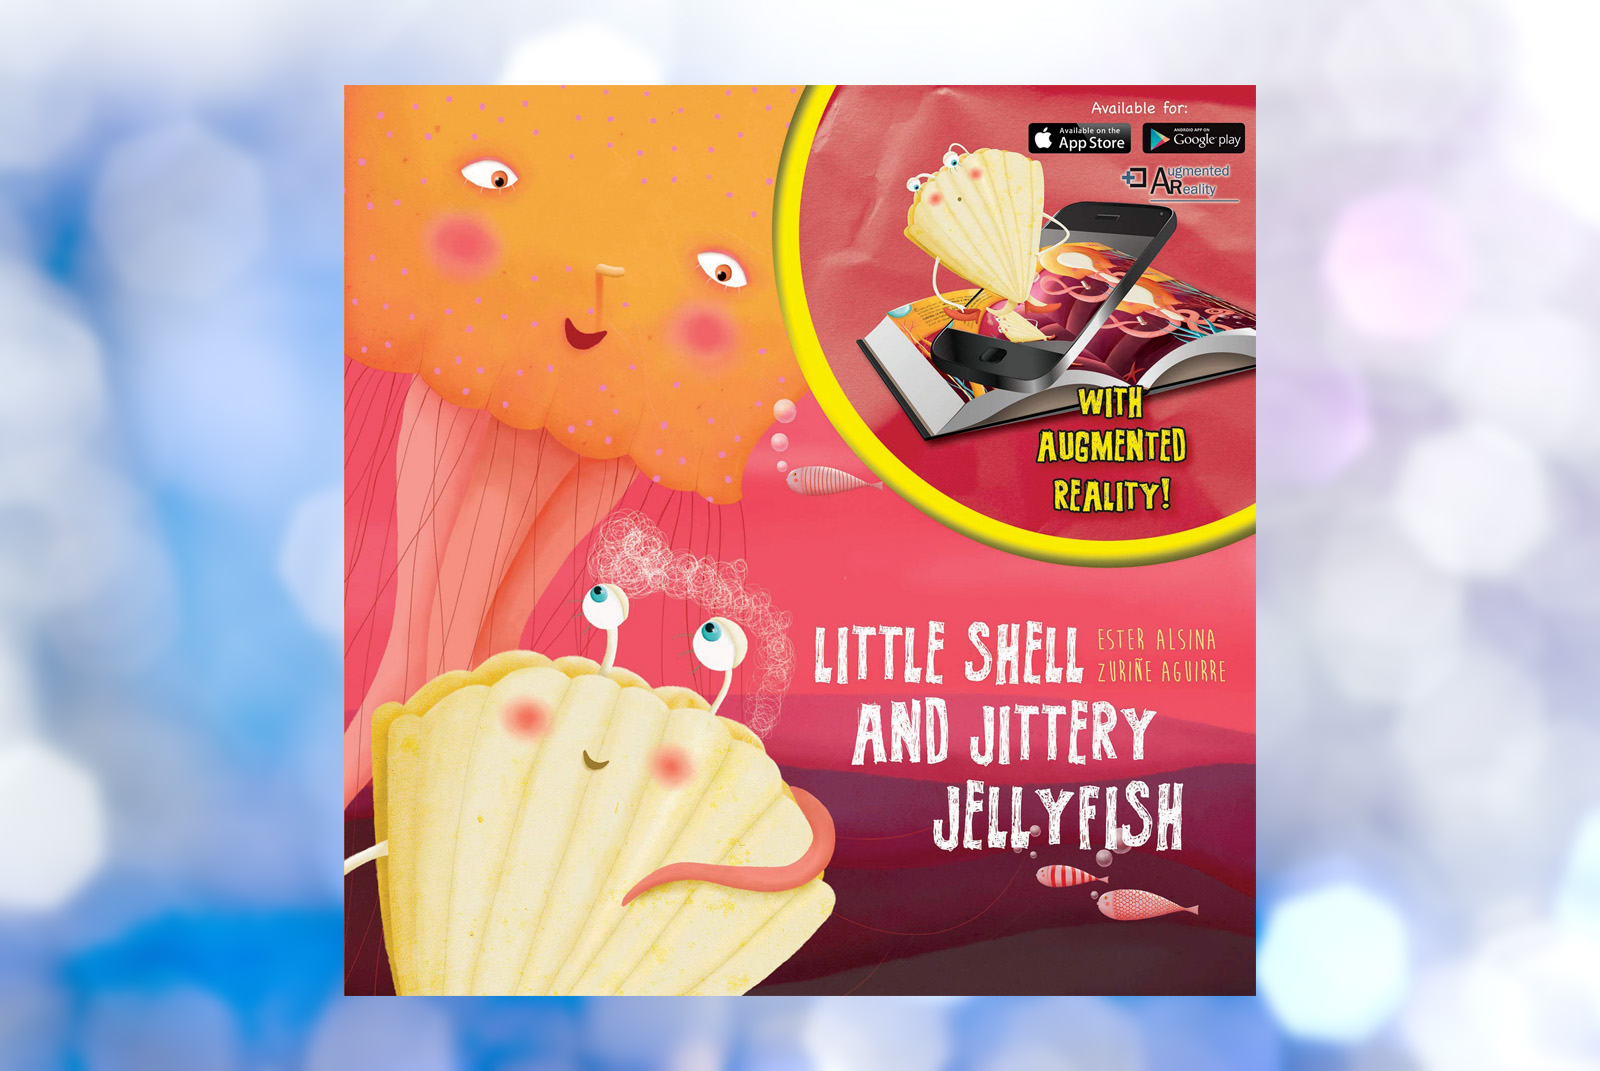 Seashell and Jellyfish on a Red Book Cover